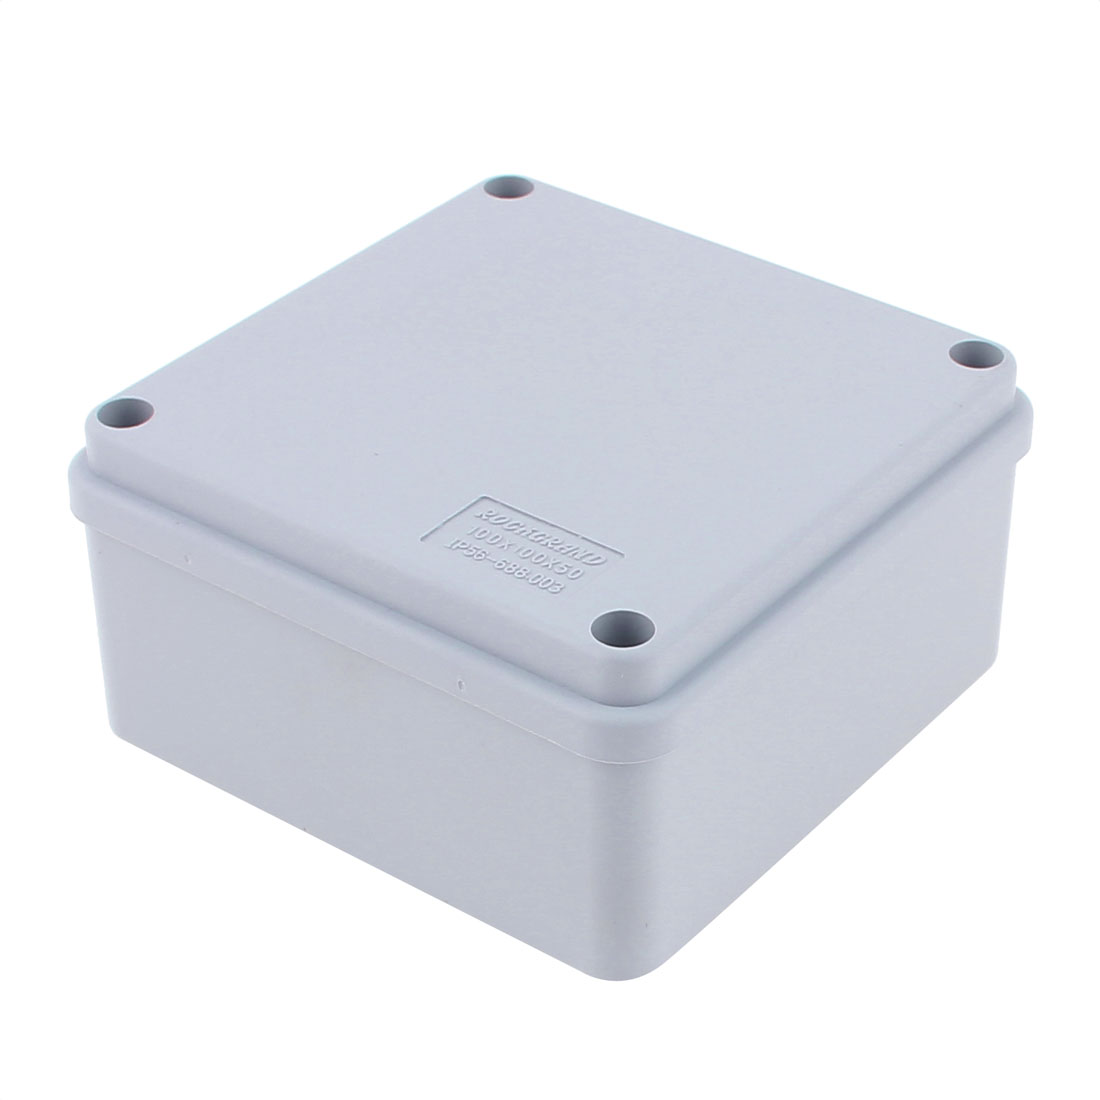 100 x 100 x 50mm Dustproof IP65 Junction Box DIY Terminal Connecting Box Enclosure